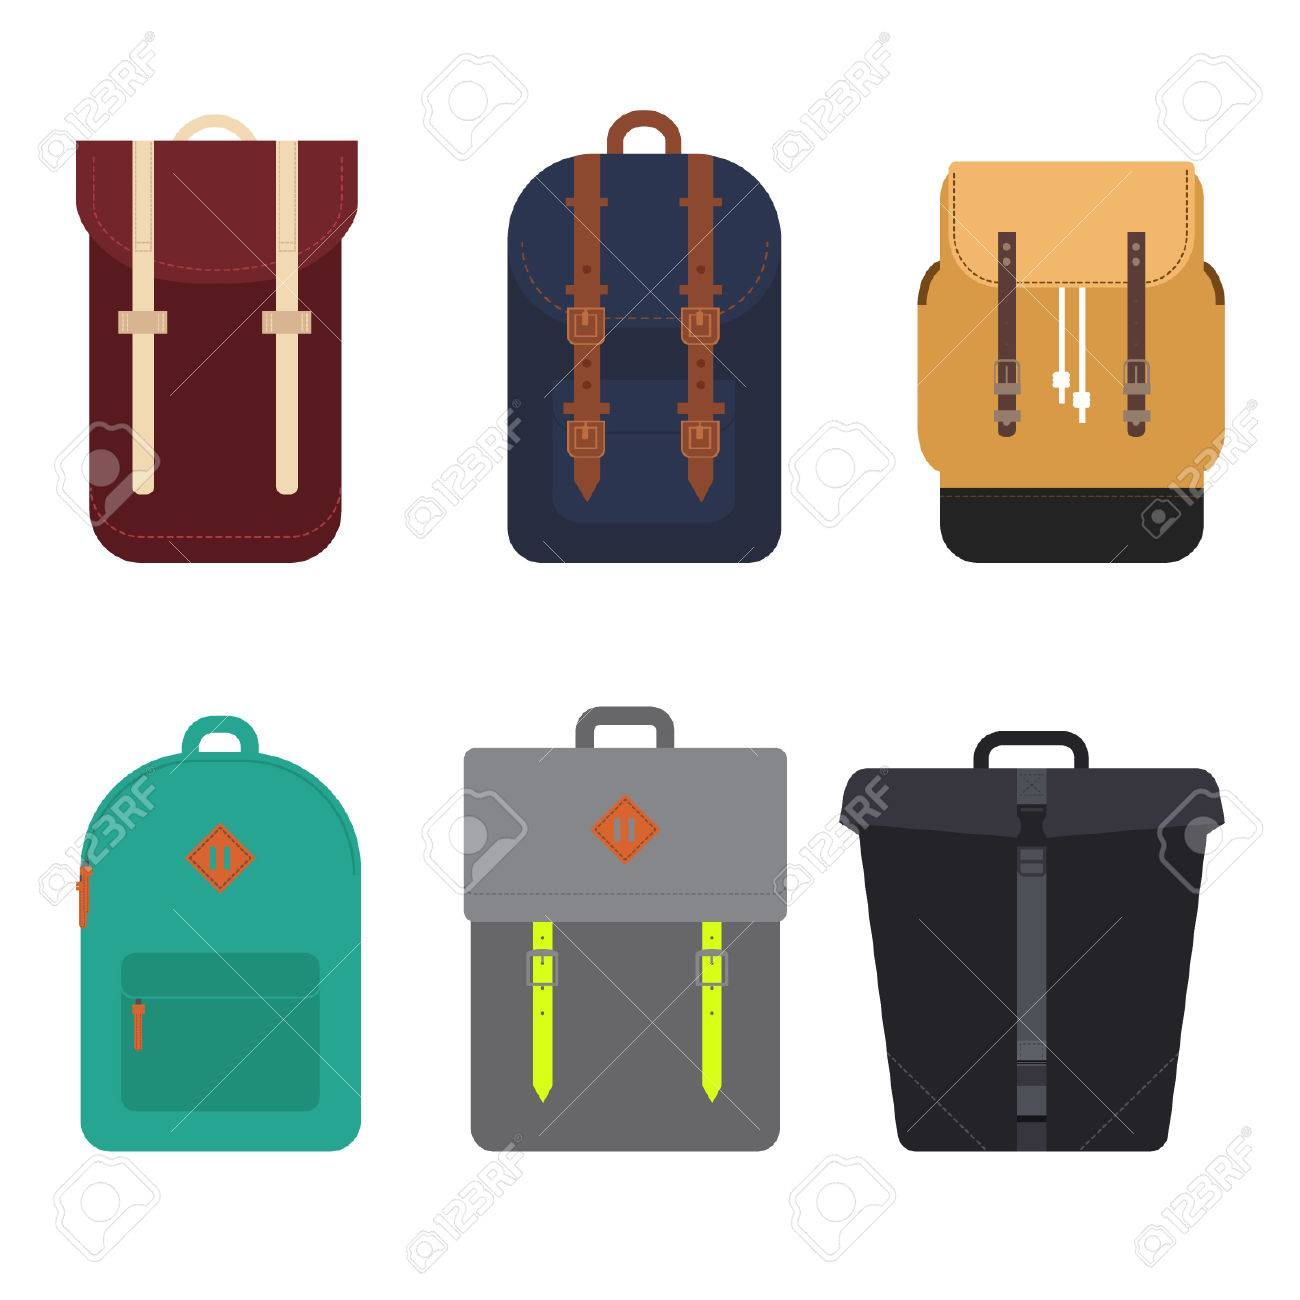 afc987452 Set of trendy hipster backpacks isolated on white background, vector  illustration. Stock Vector -